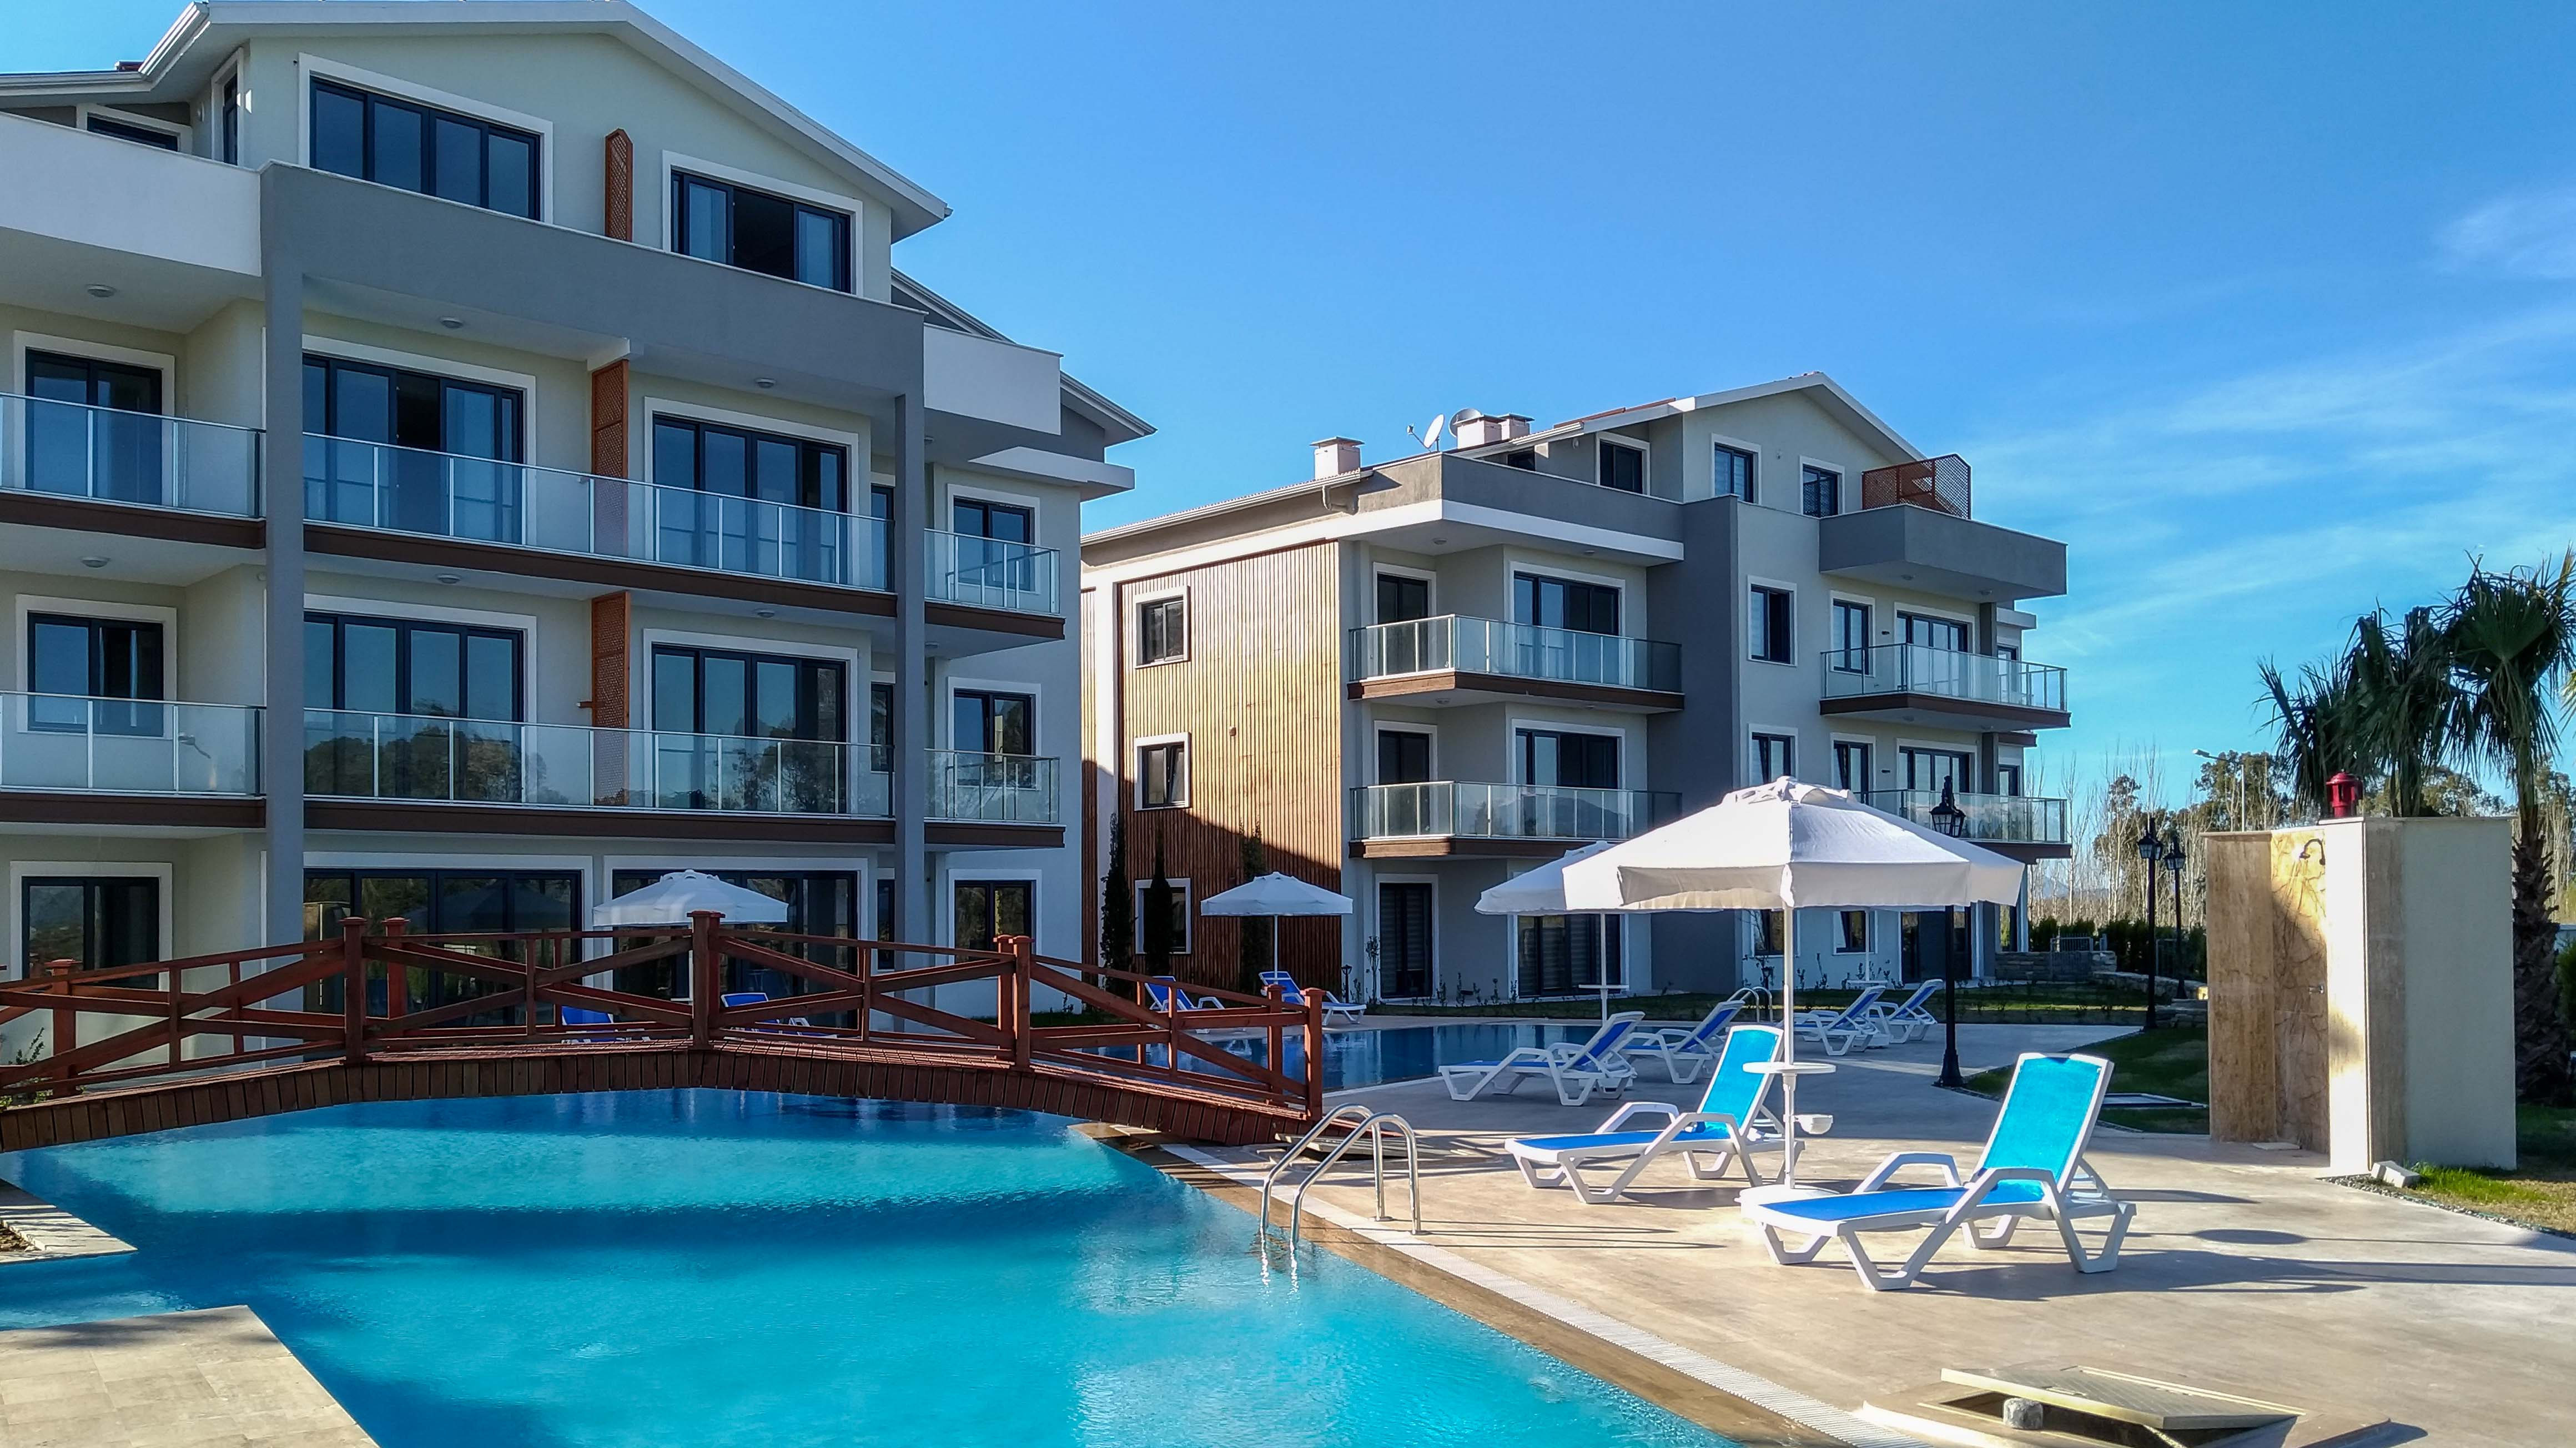 2-Bedroom Flat By The Pool